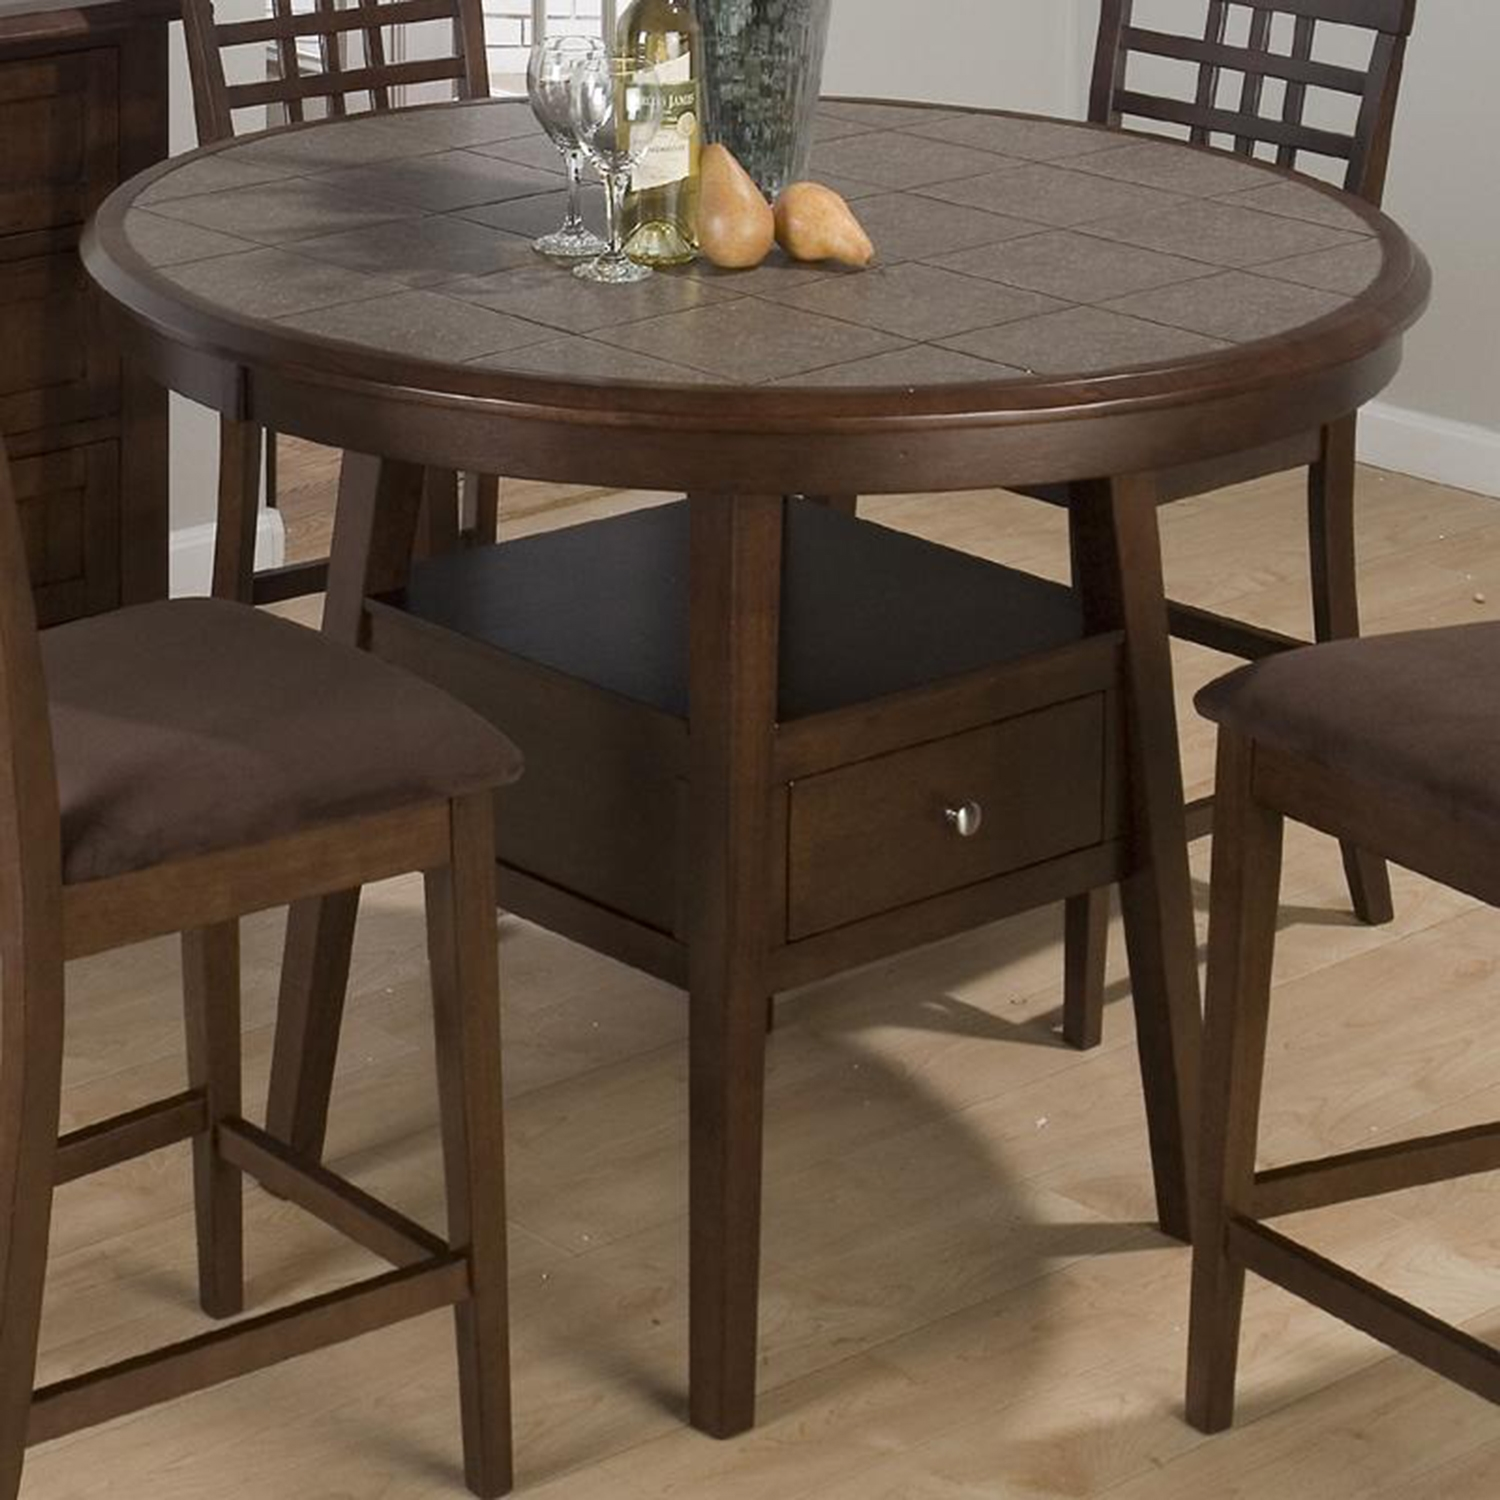 Caleb 5 Pieces Counter Height Dining Set - Brown - JOFR-976-48BT-BS515KD-SET